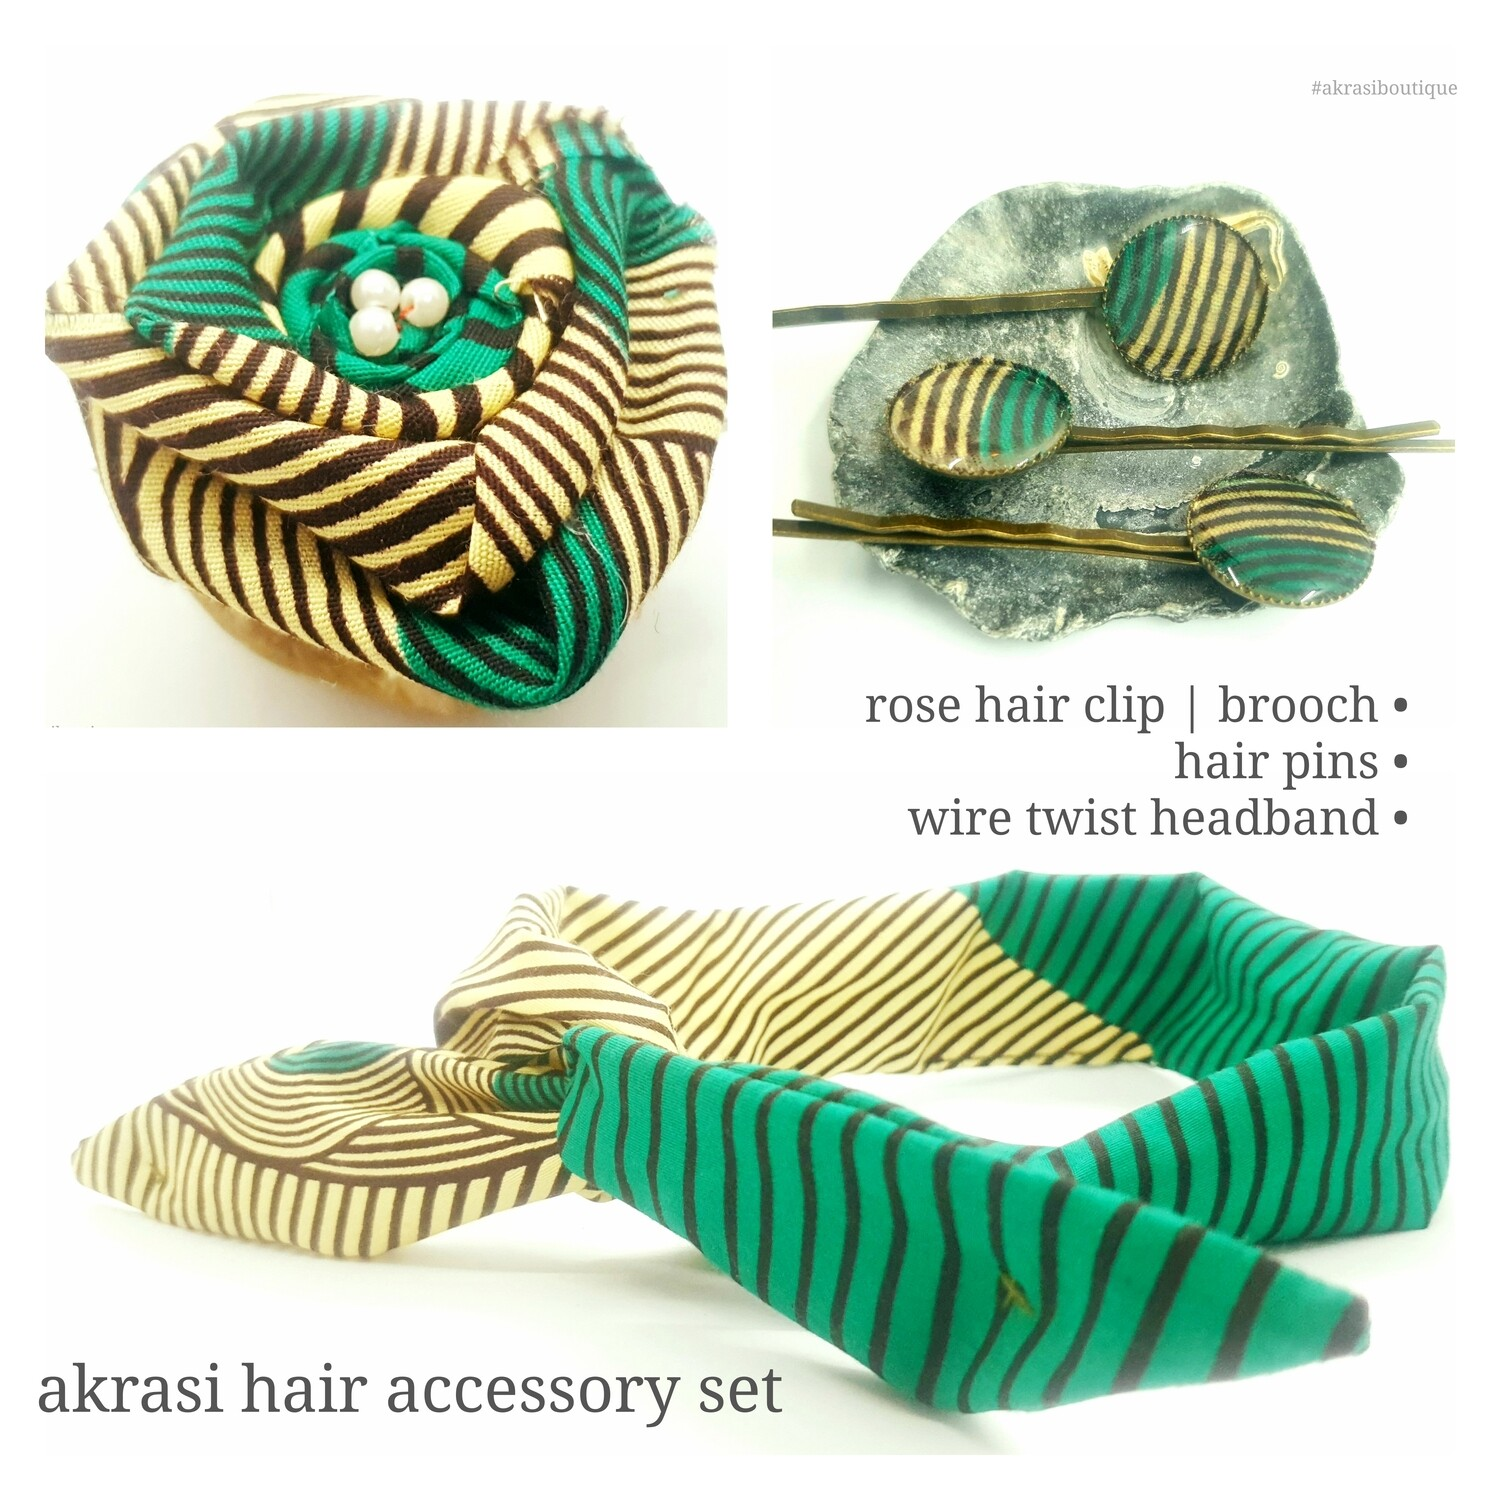 African print green, cream and brown hair accessory set includes wire hair tie, hair pins and flower brooch | hair clip